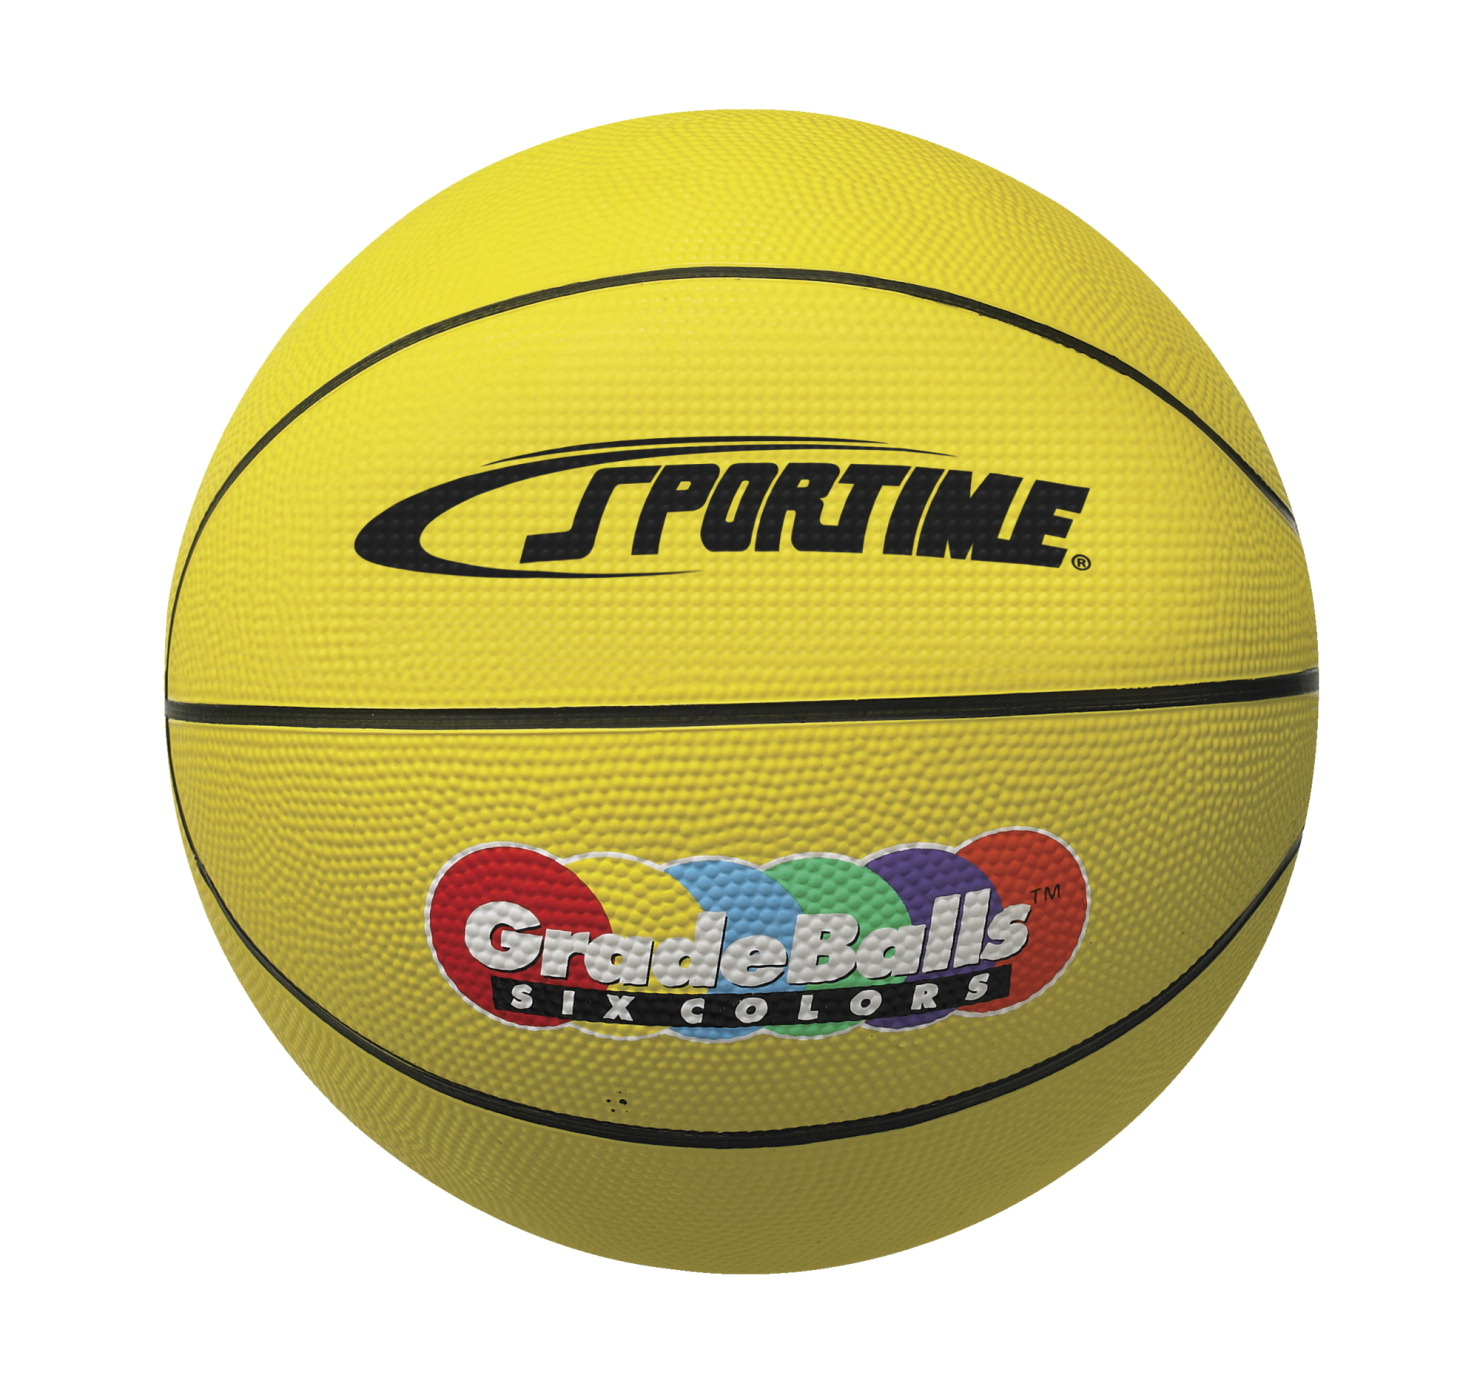 Sportime Gradeball Rubber MInchi Basketball, 11 Inches, Yellow